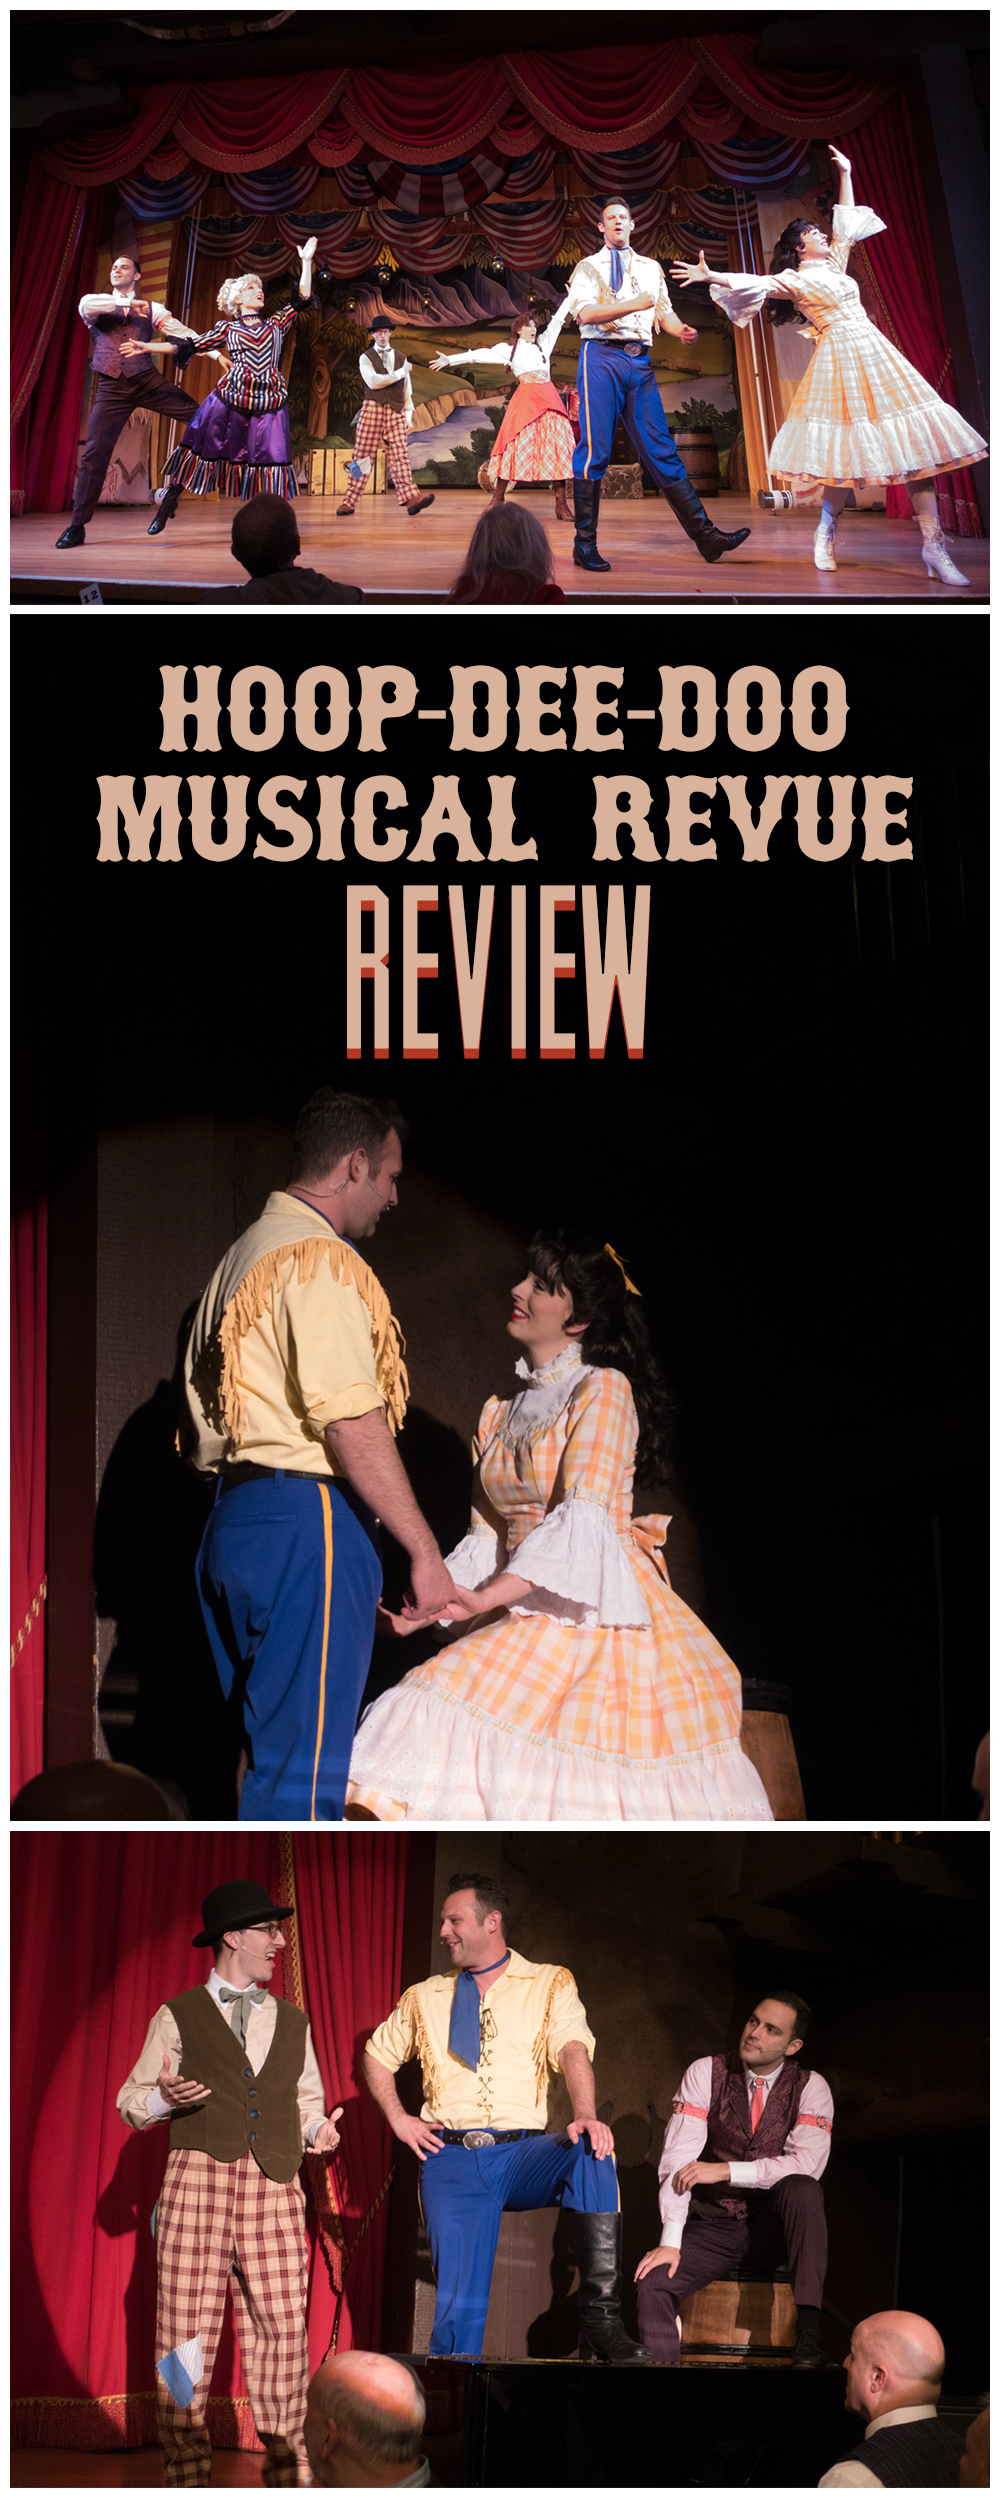 Hoop-Dee-Doo Revue at Disney's Fort Wilderness. Why your family should attend this dinner show on your next Disney Trip! #disneyworld #hoopdeedoo